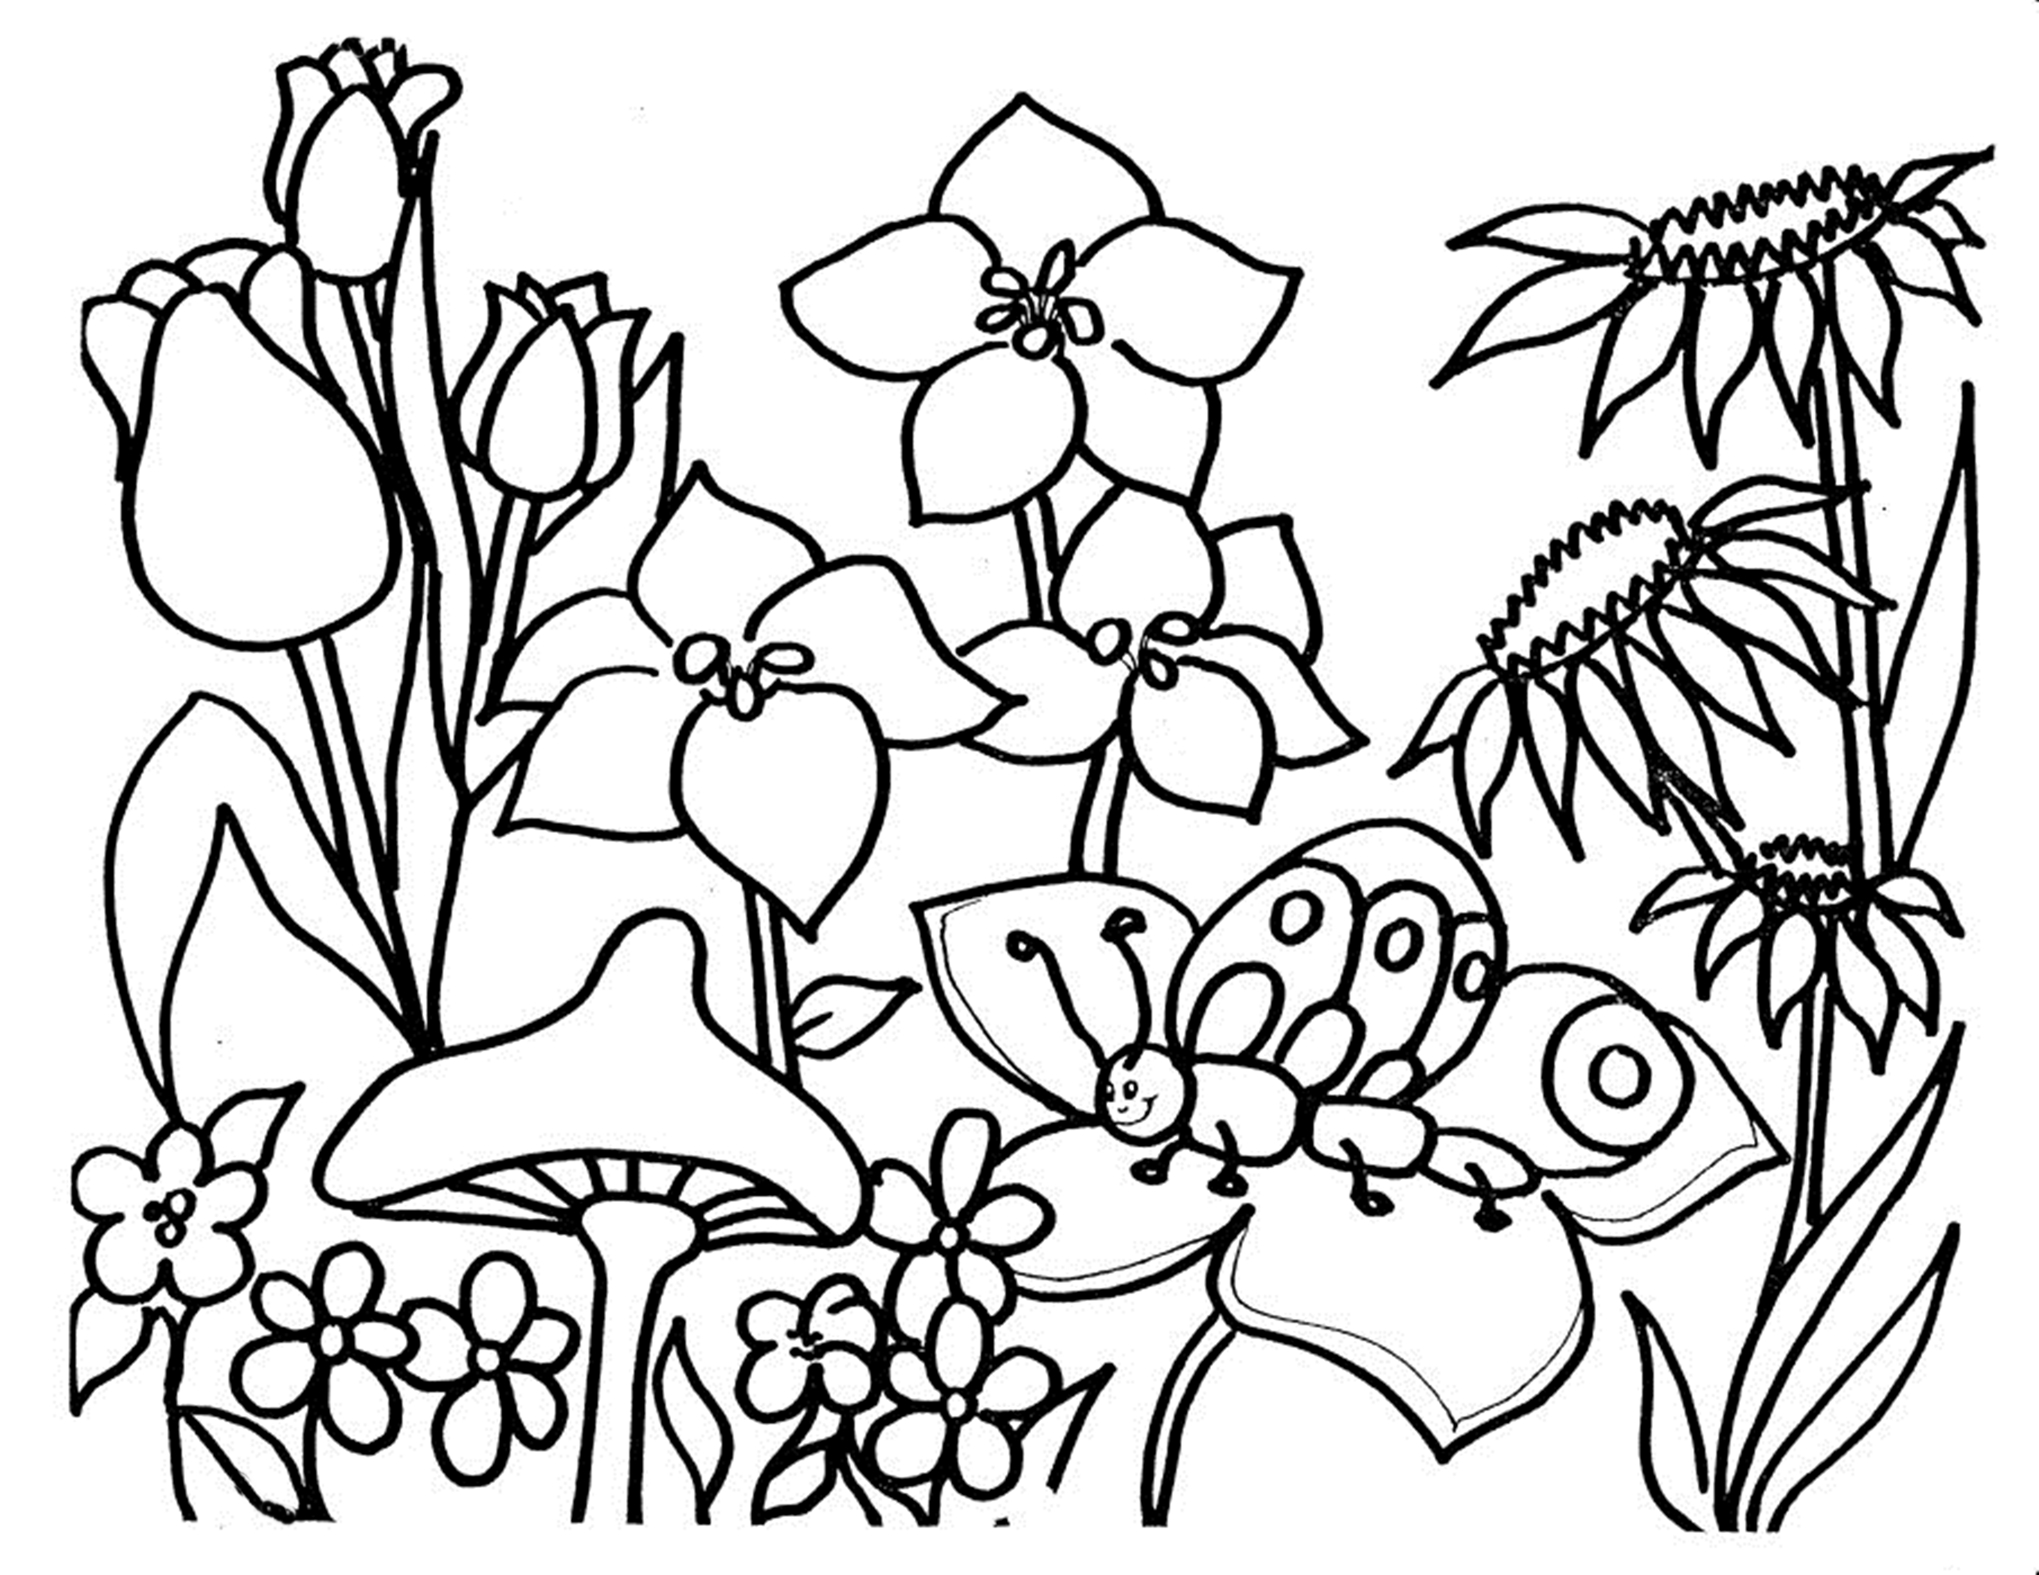 childrens coloring pages flowers awesome flower coloring pages to print top free flowers pages coloring childrens